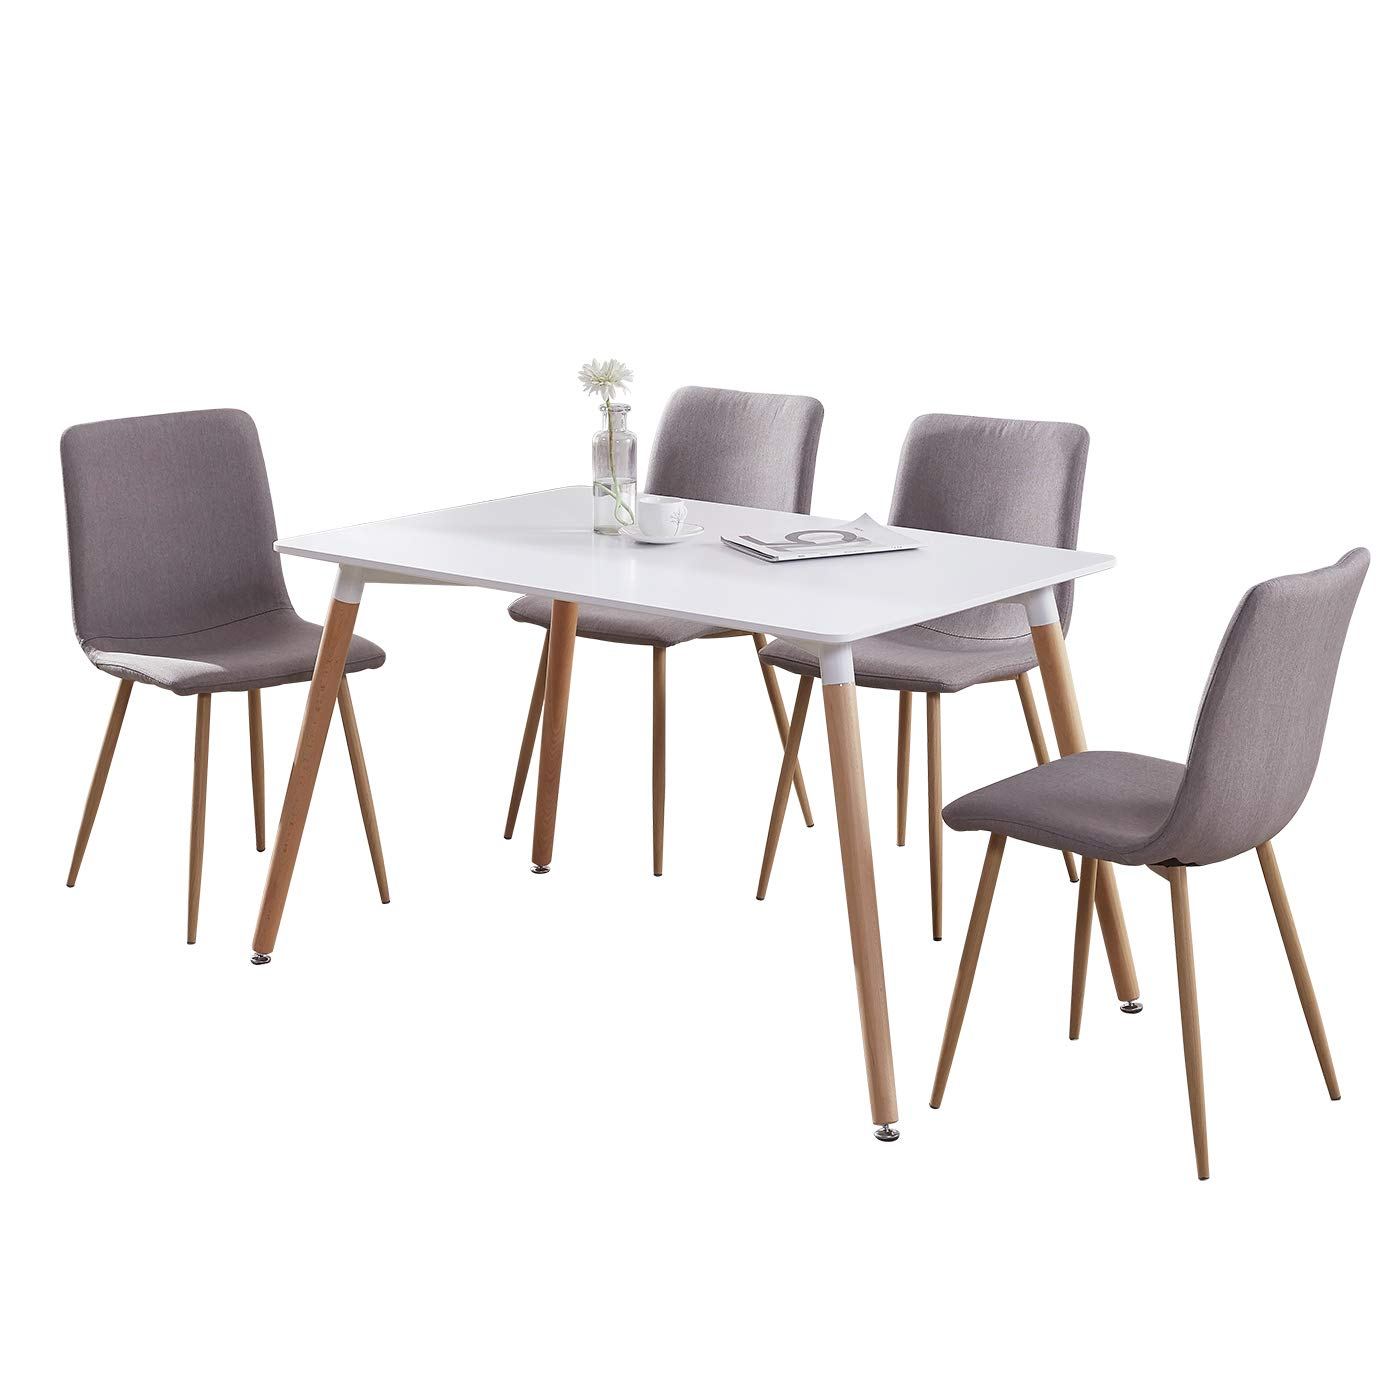 GIZZA Wood Rectangular Dining Table with 4 Retro Metal Chairs Set for Dining Kitchen Breakfast Office Lounge Restaurant Inspired Designer (Brown Sand)